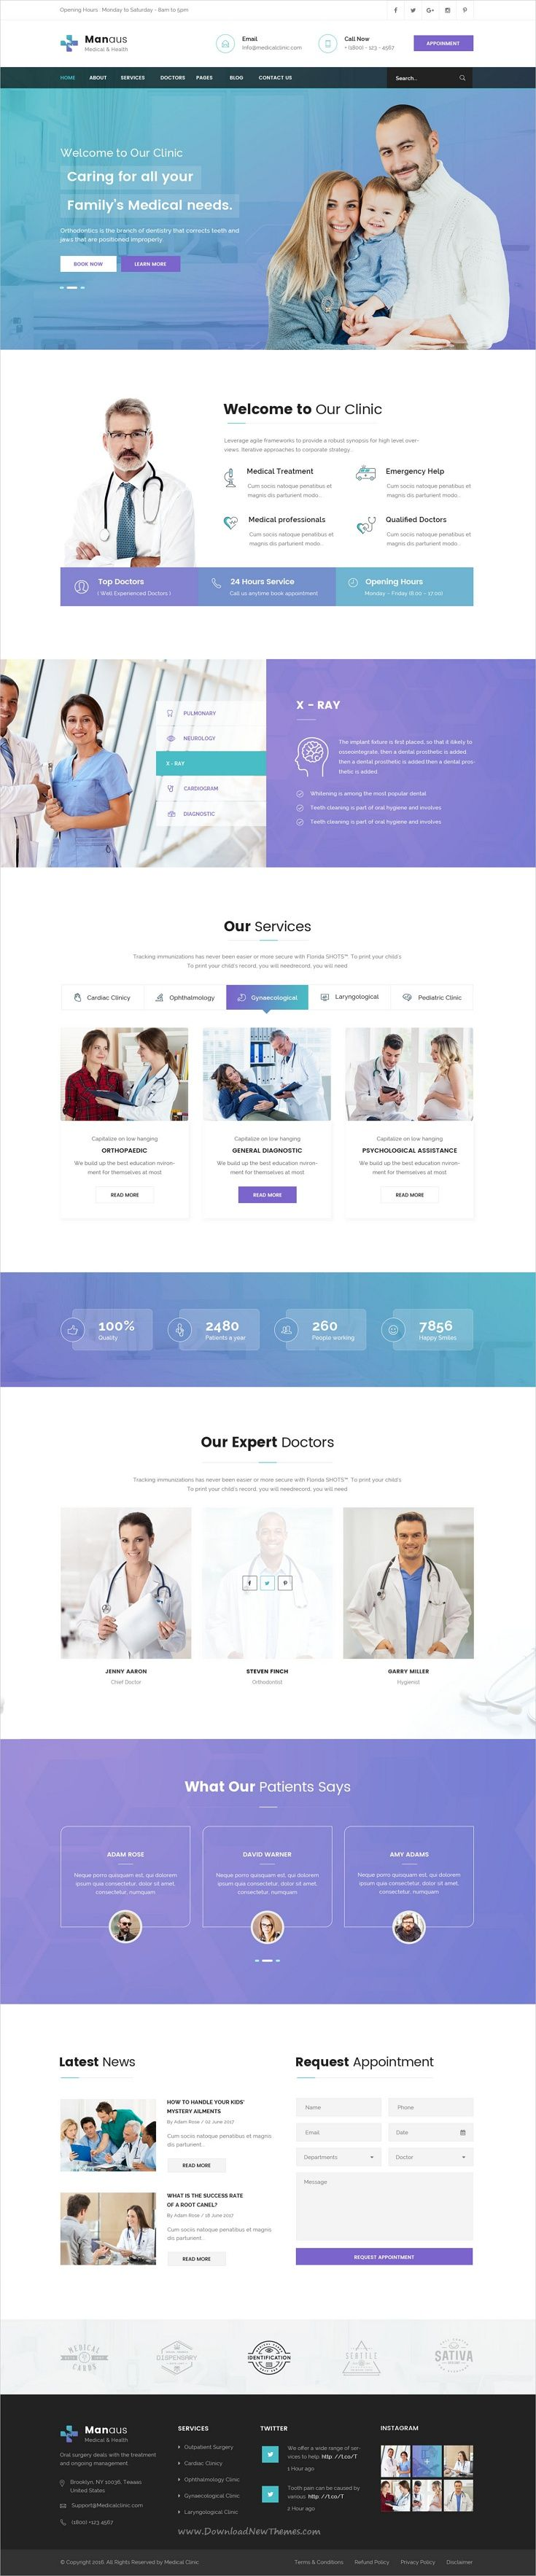 Manaus is clean and modern design #PSD template for #medical and healthcare website with 12 layered PSD files download now..